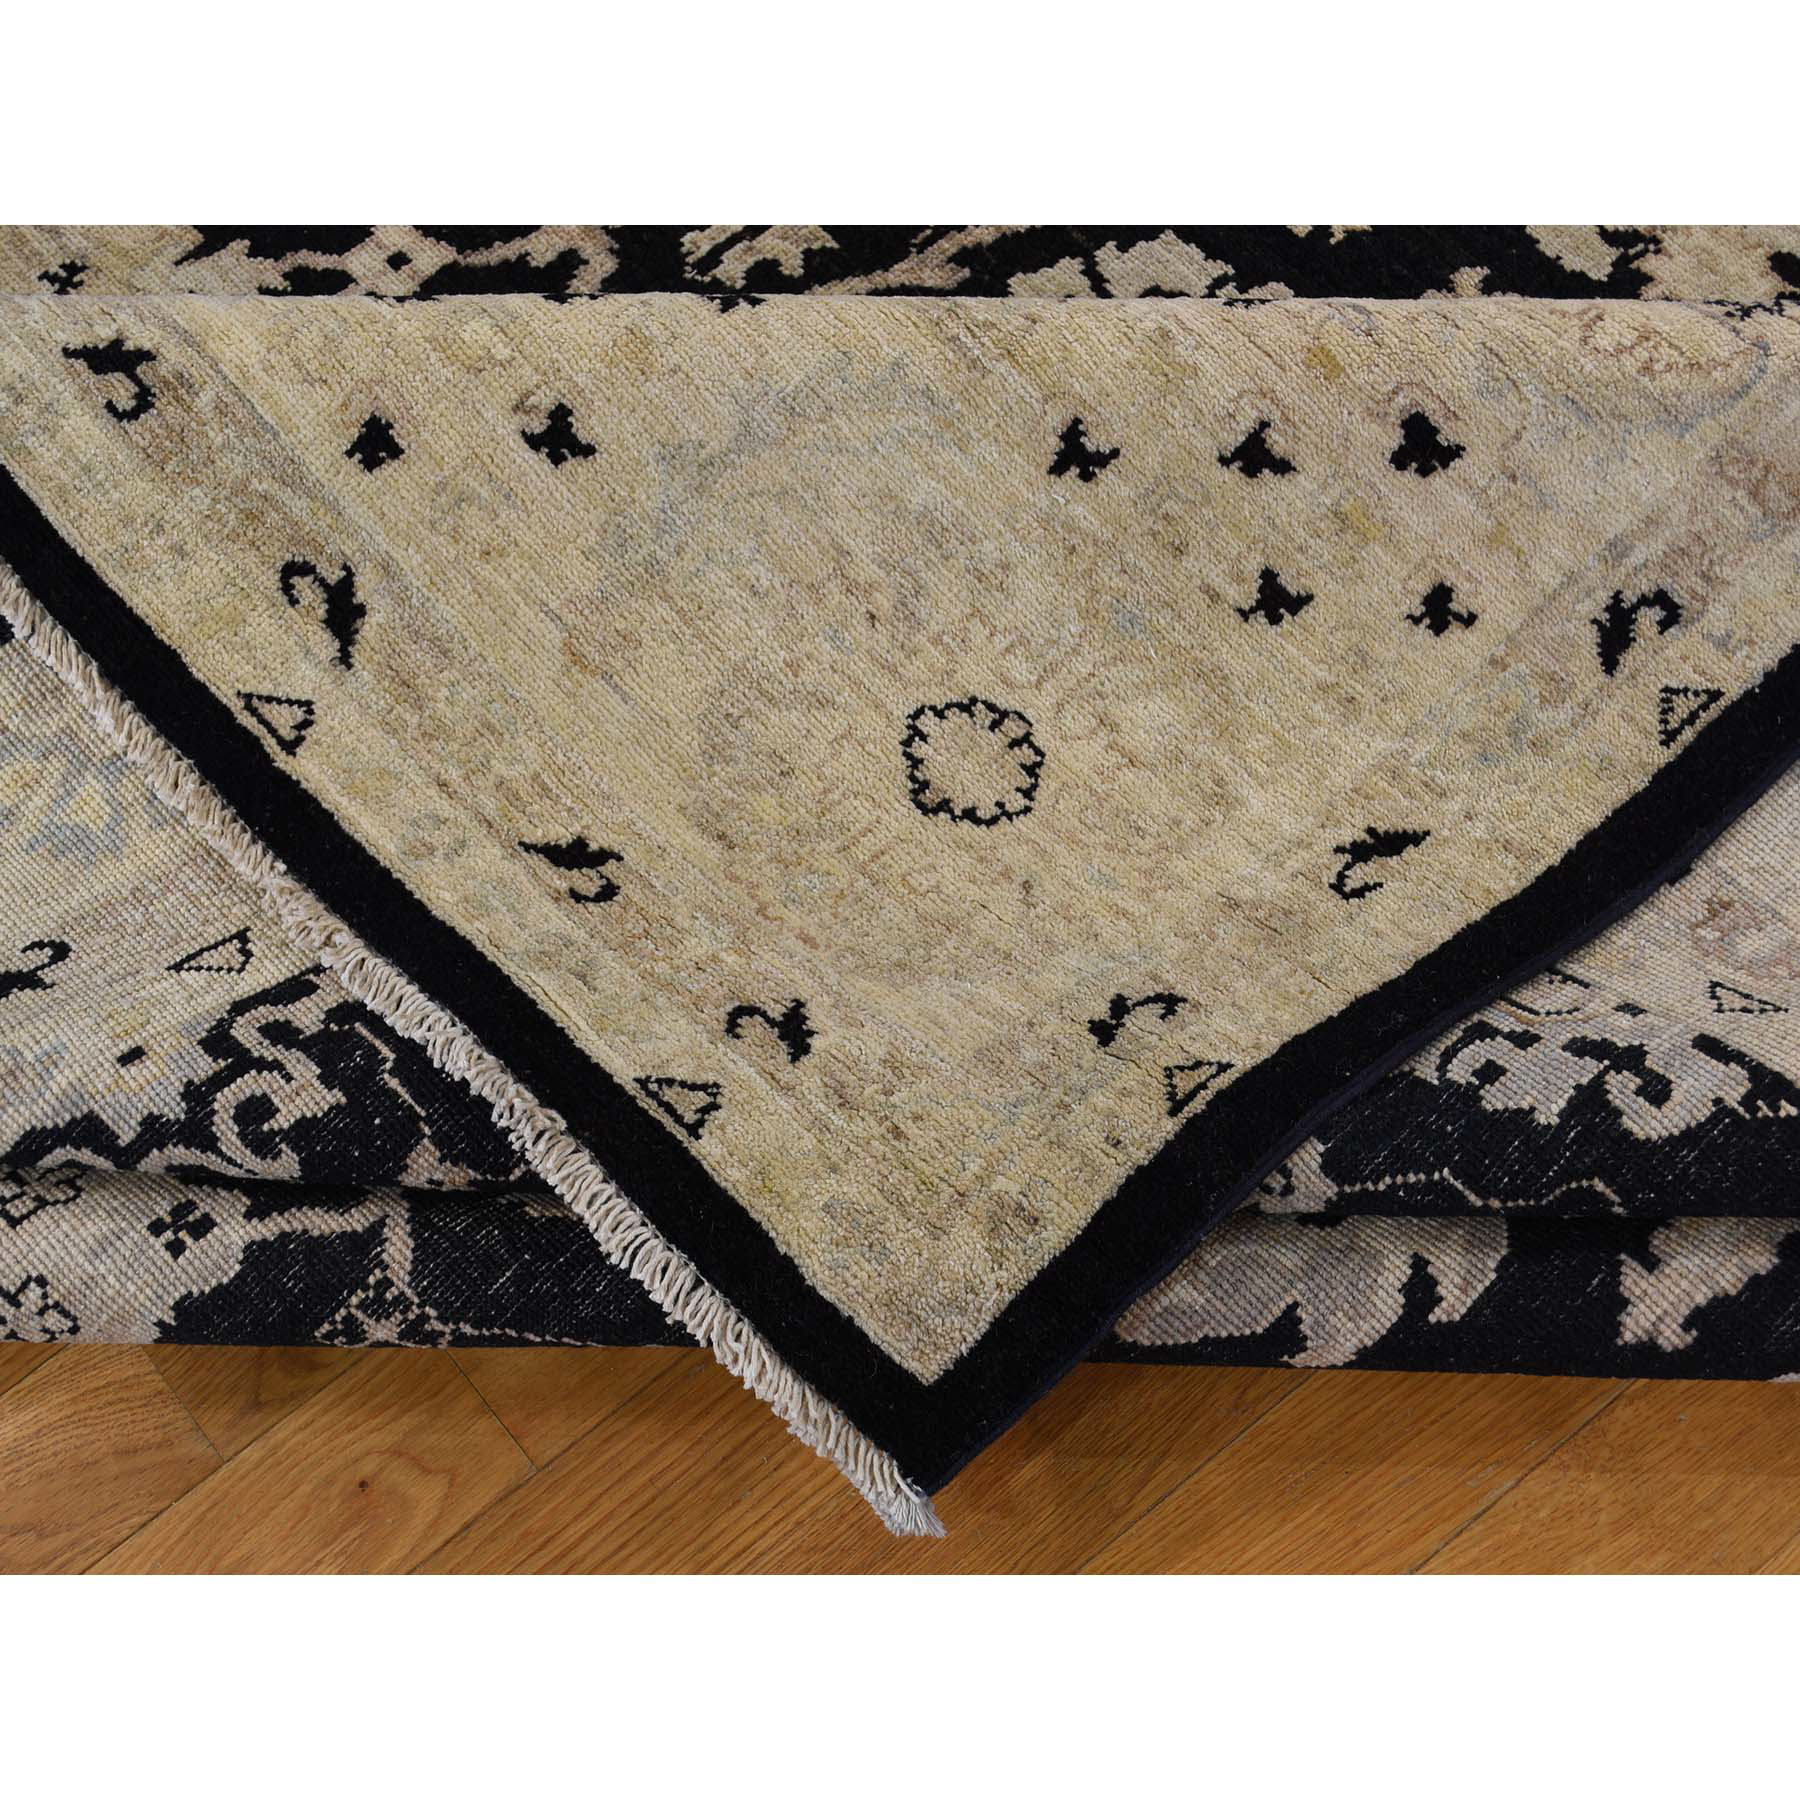 8-10 x12- Black Hand-Knotted Pure Wool Peshawar Oriental Rug